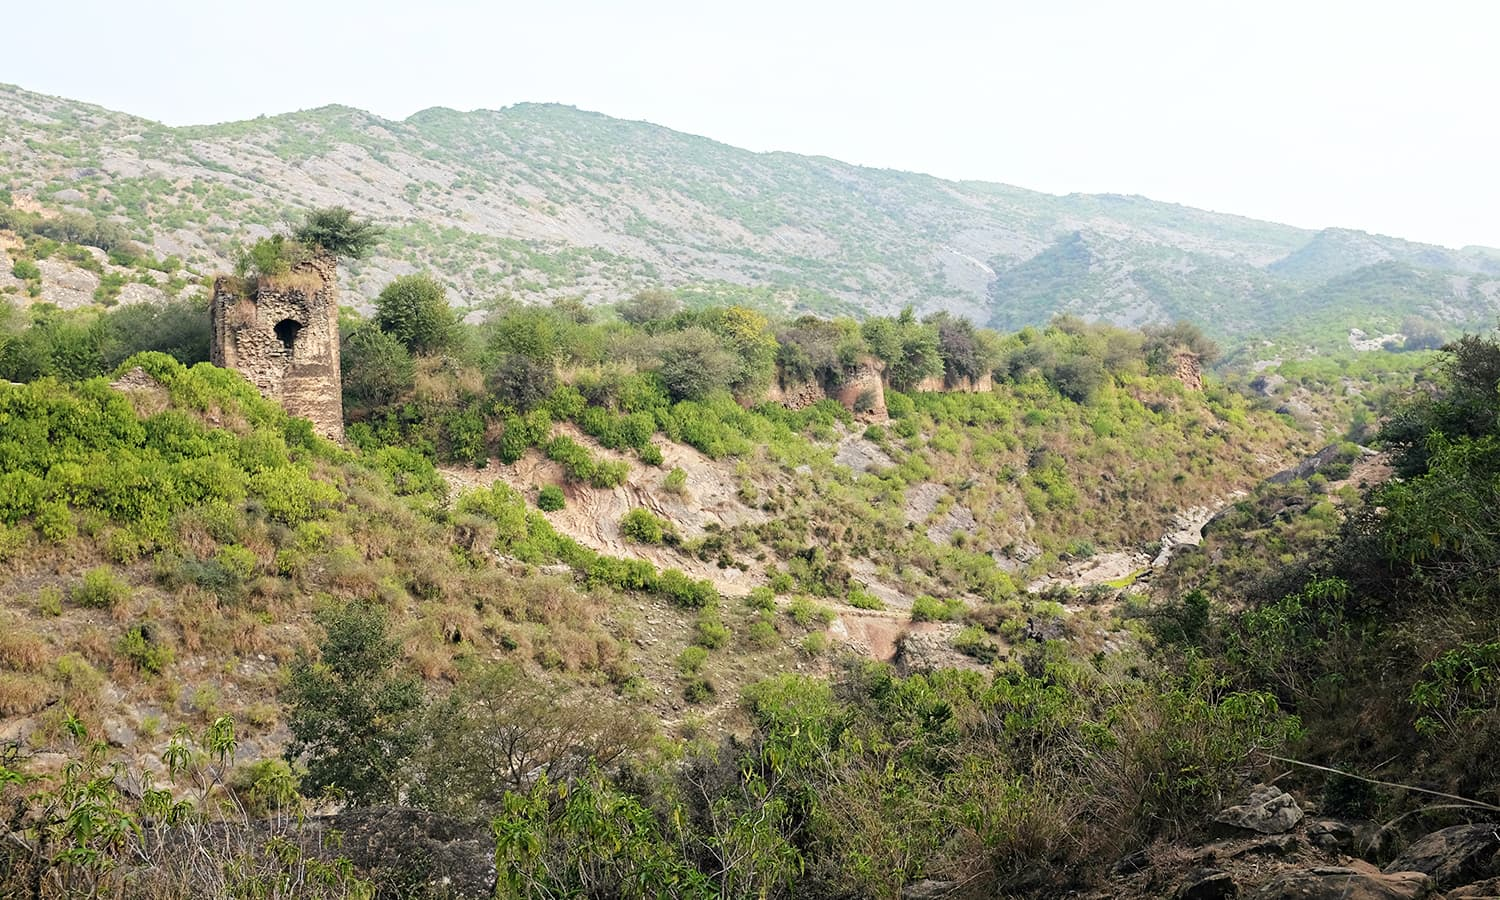 I spot the fort from a distance.